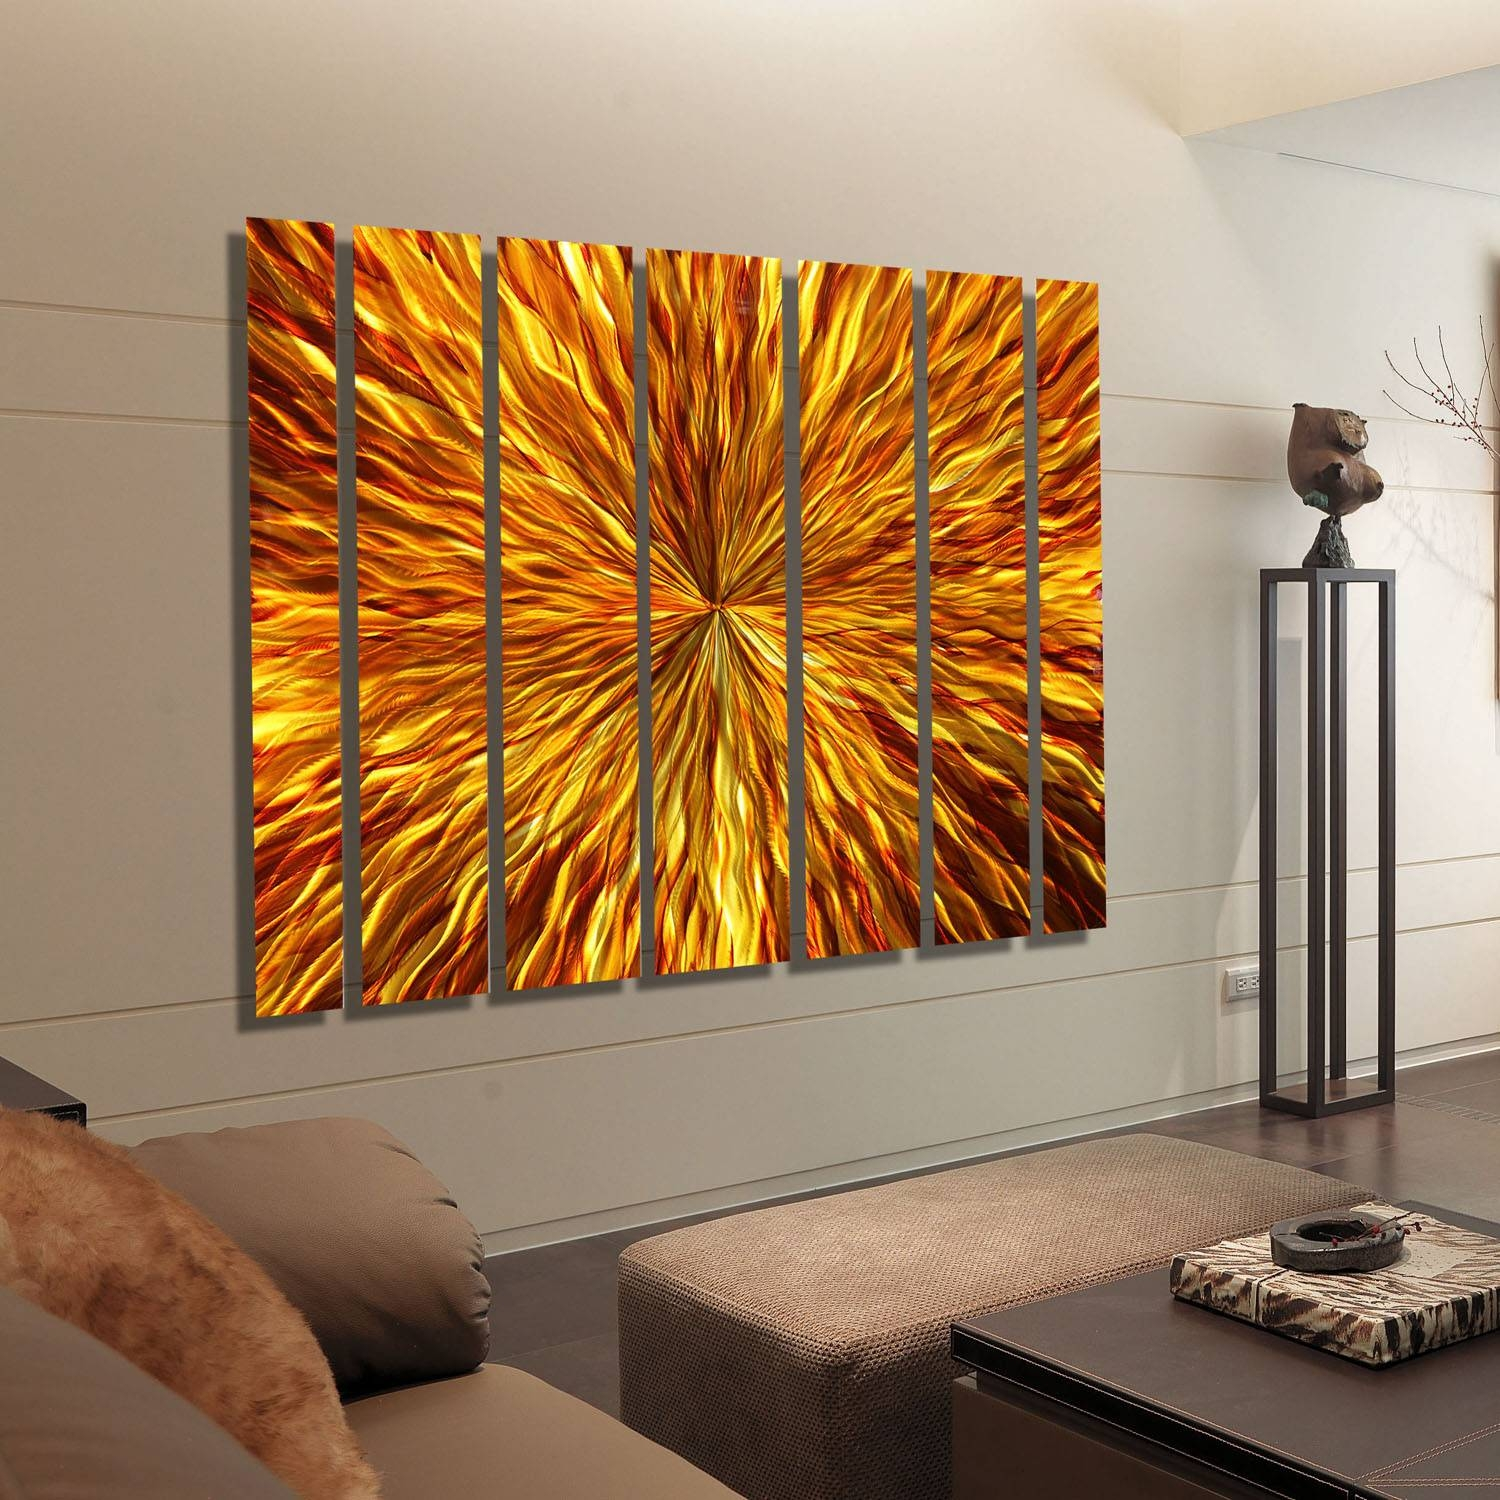 Amber Vortex Xl – Extra Large Modern Metal Wall Artjon Allen In Current Extra Large Metal Wall Art (View 6 of 20)